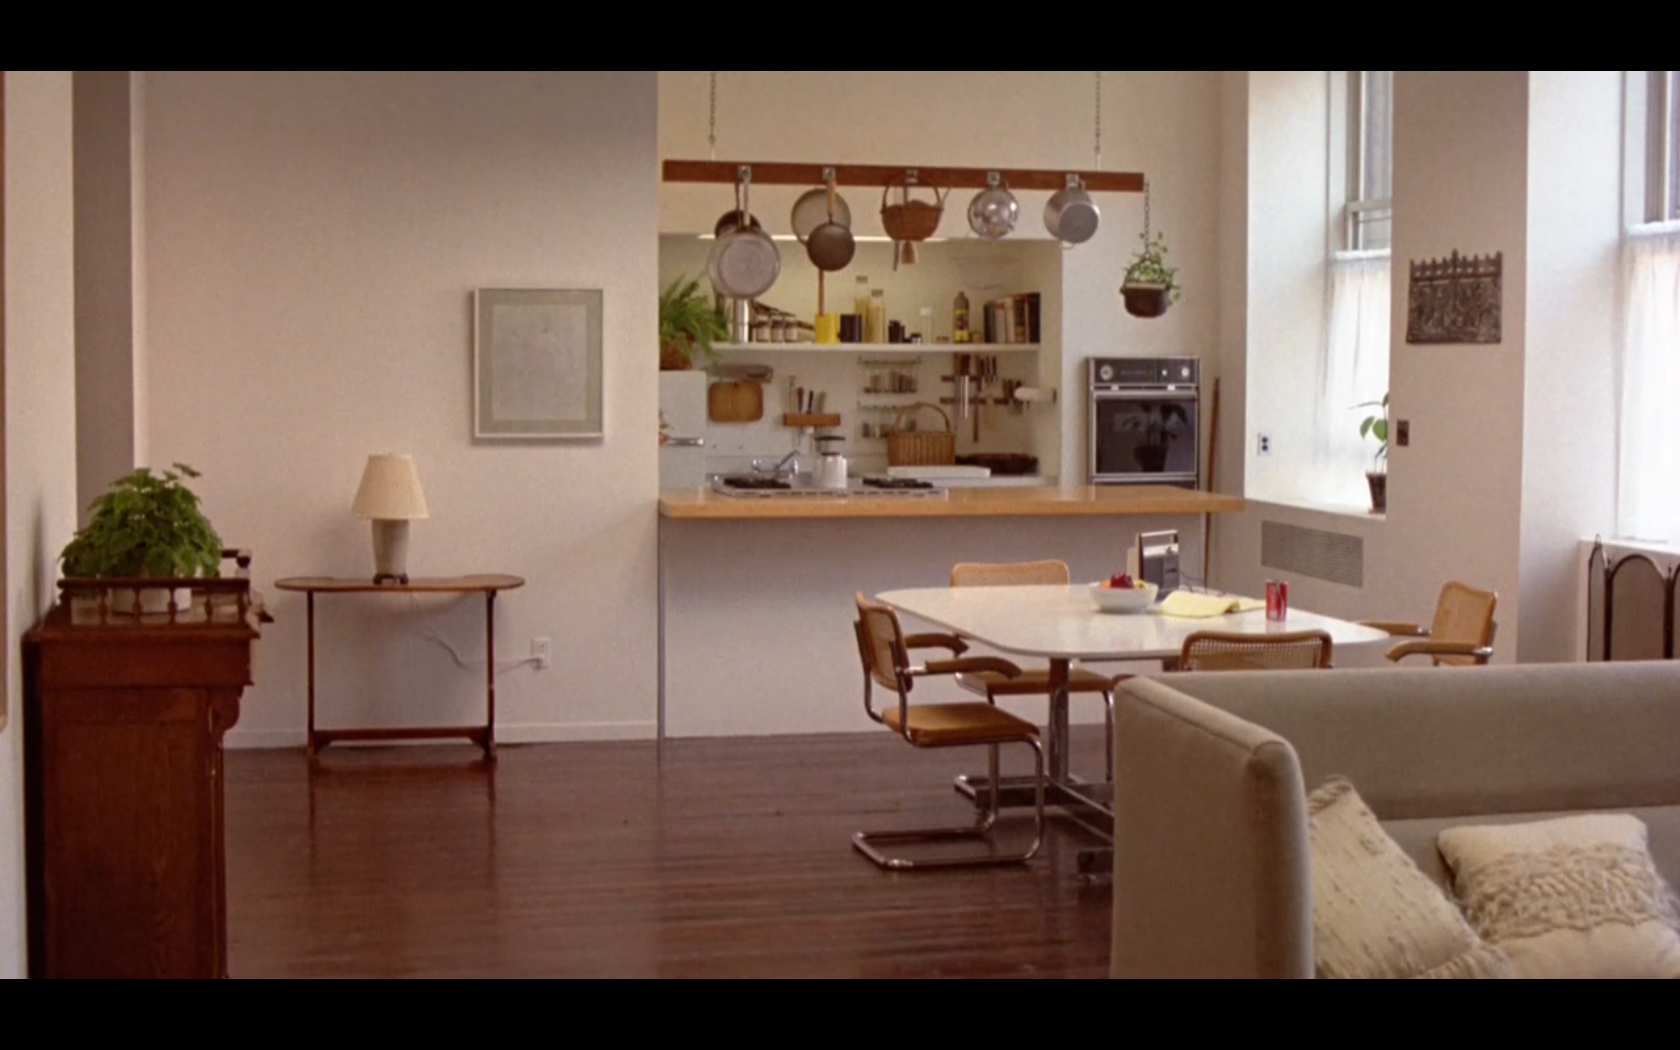 Interiors, 1978 By Woody Allen. Cinematography By Gordon Willis.